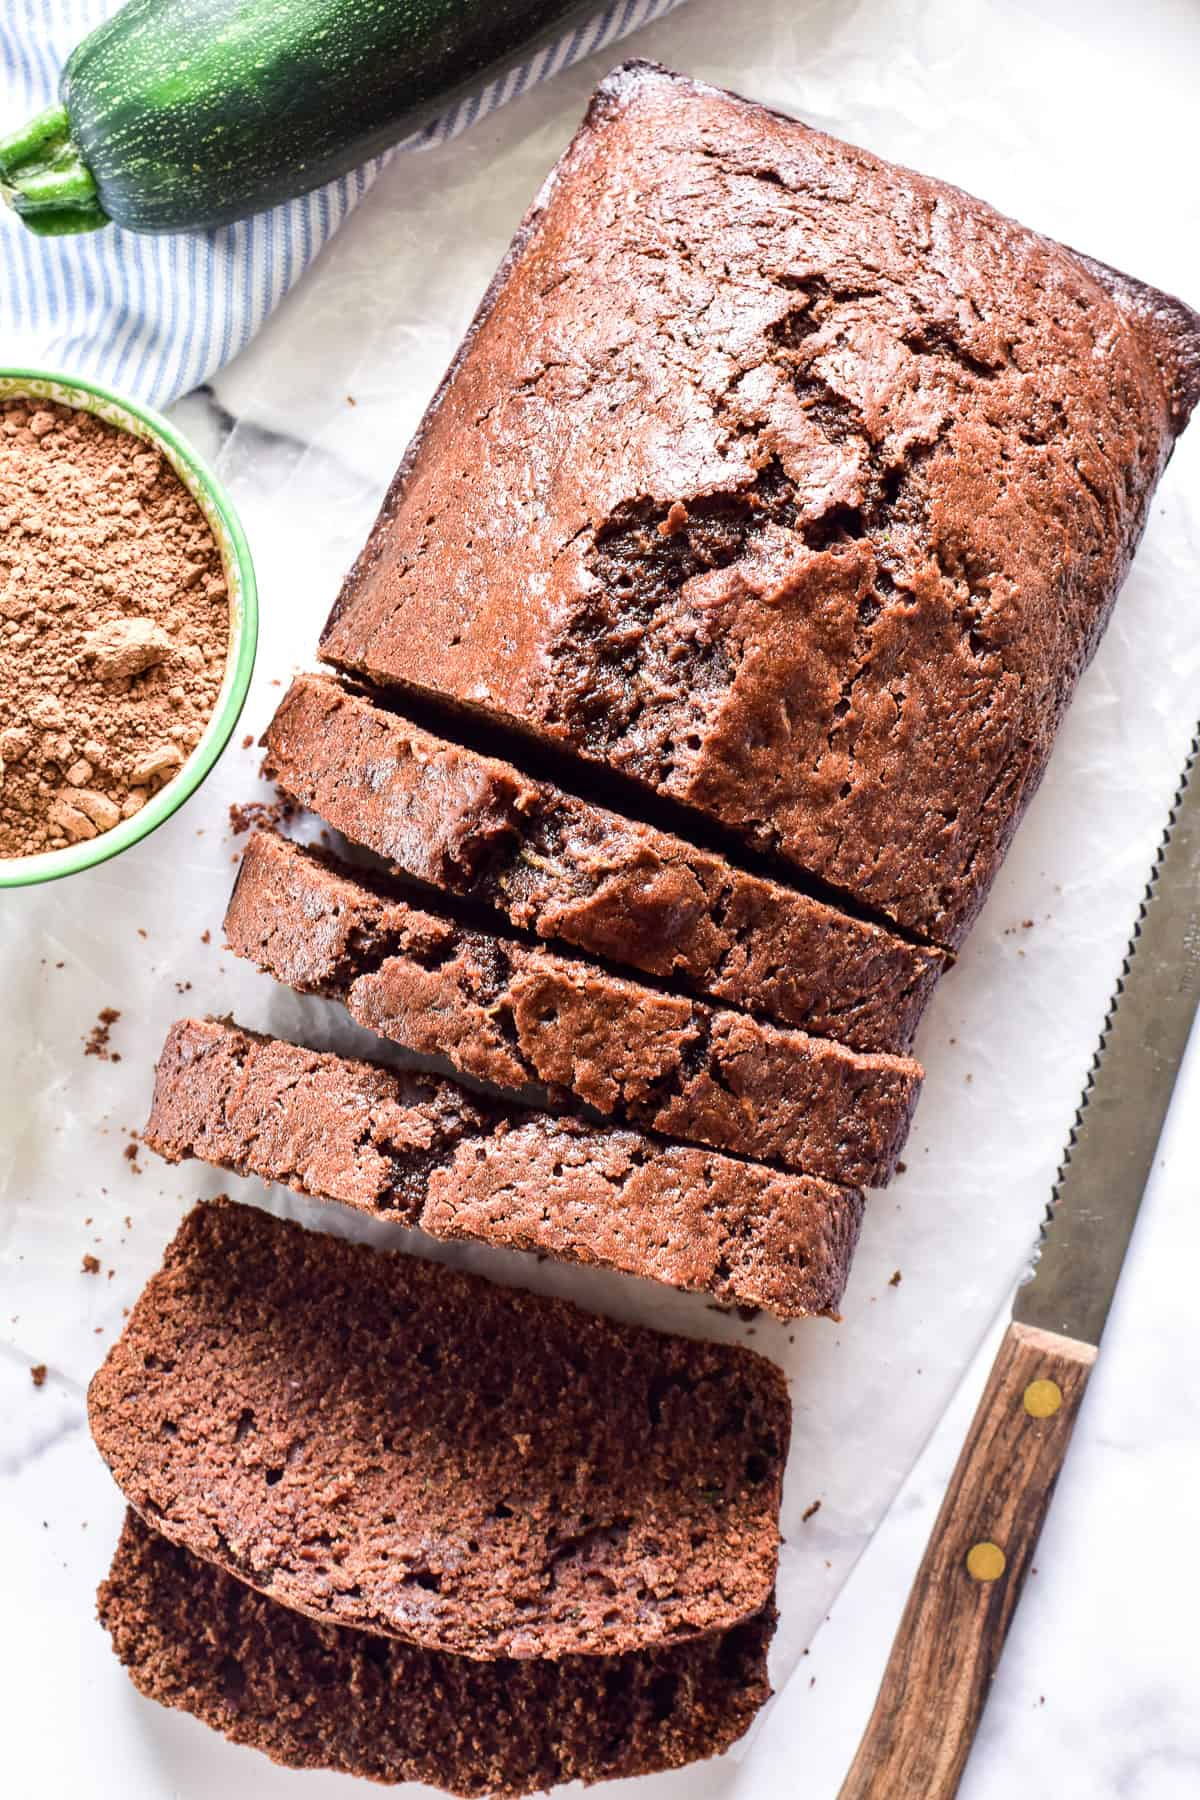 Overhead image of sliced Chocolate Zucchini Bread with a knife